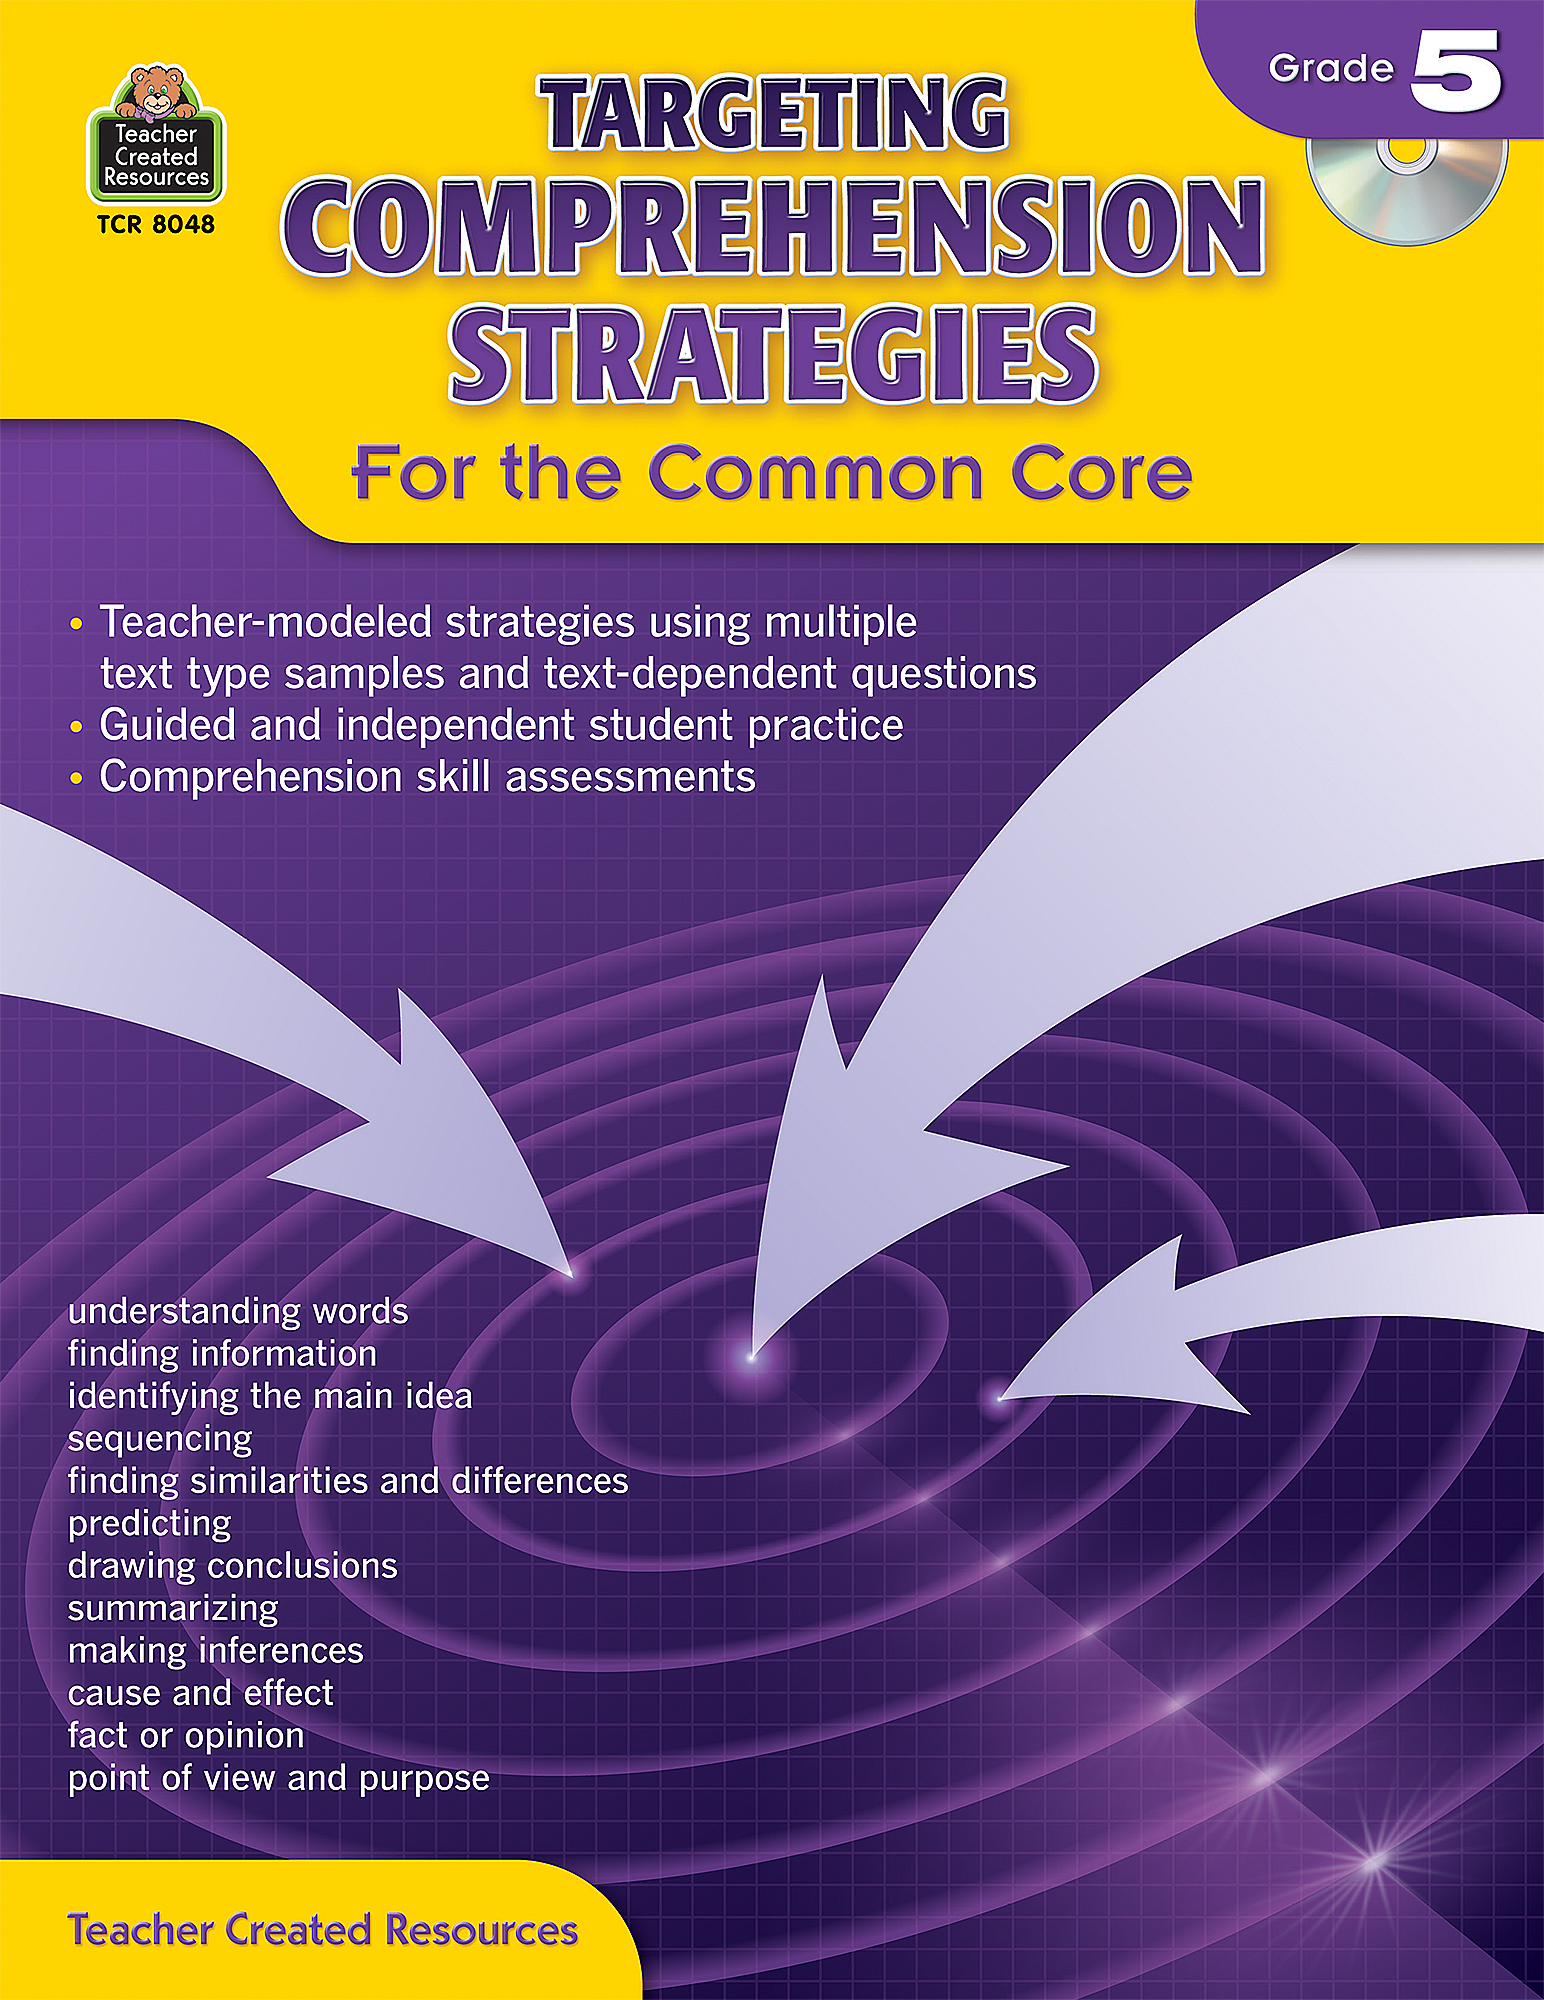 Targeting Comprehension Strategies for the Common Core Grade 5 – Teacher Created Resources Worksheets